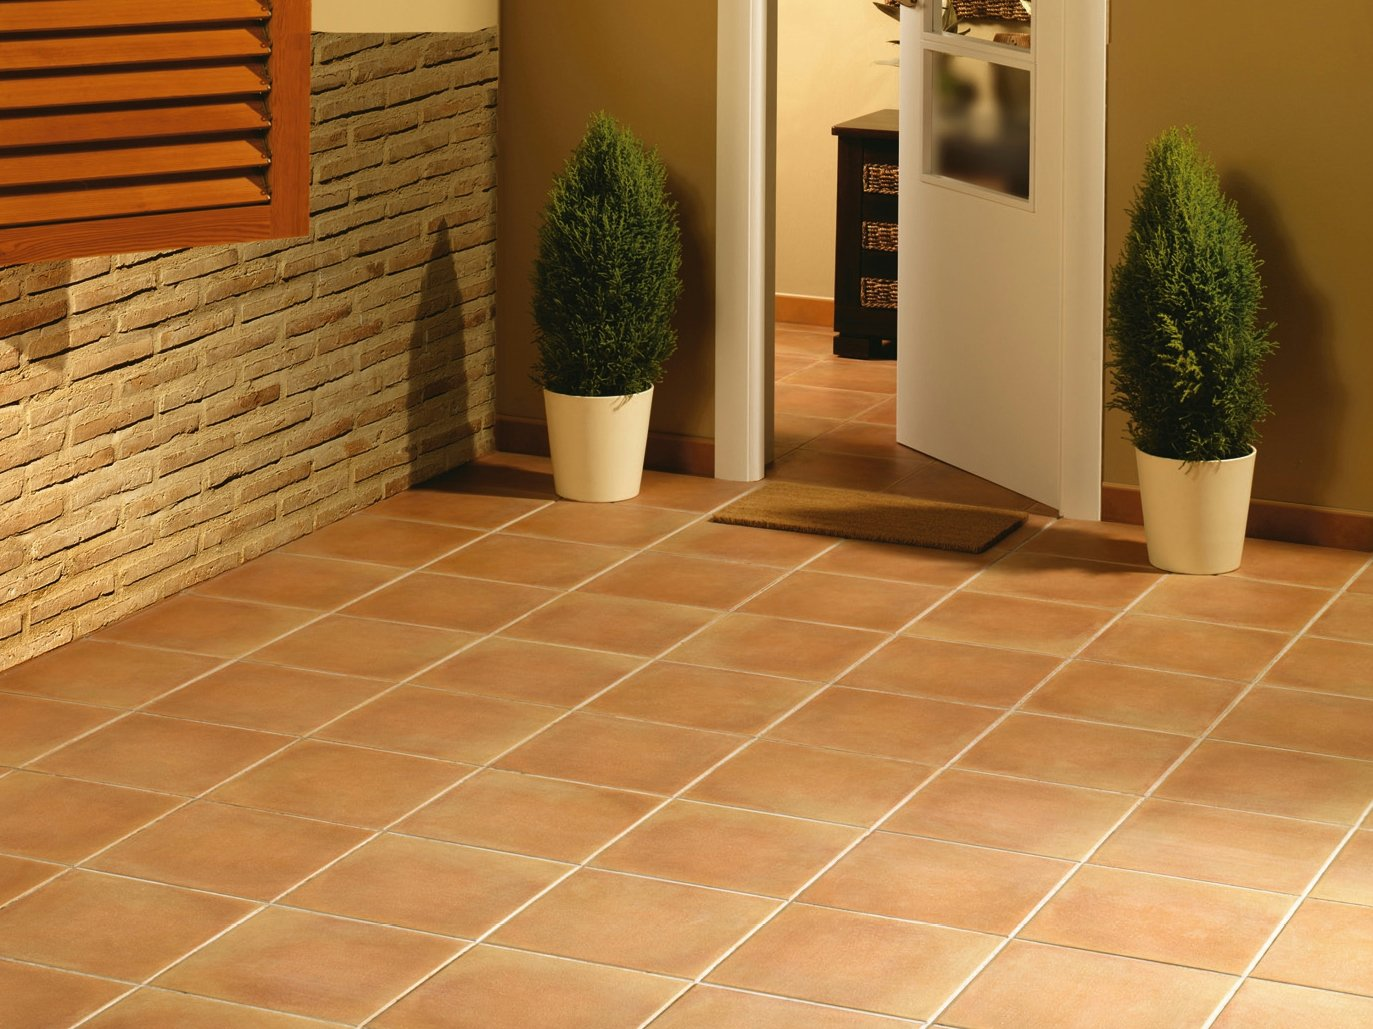 Porcelain stoneware outdoor floor tiles duero traditional for Exterior floor tiles